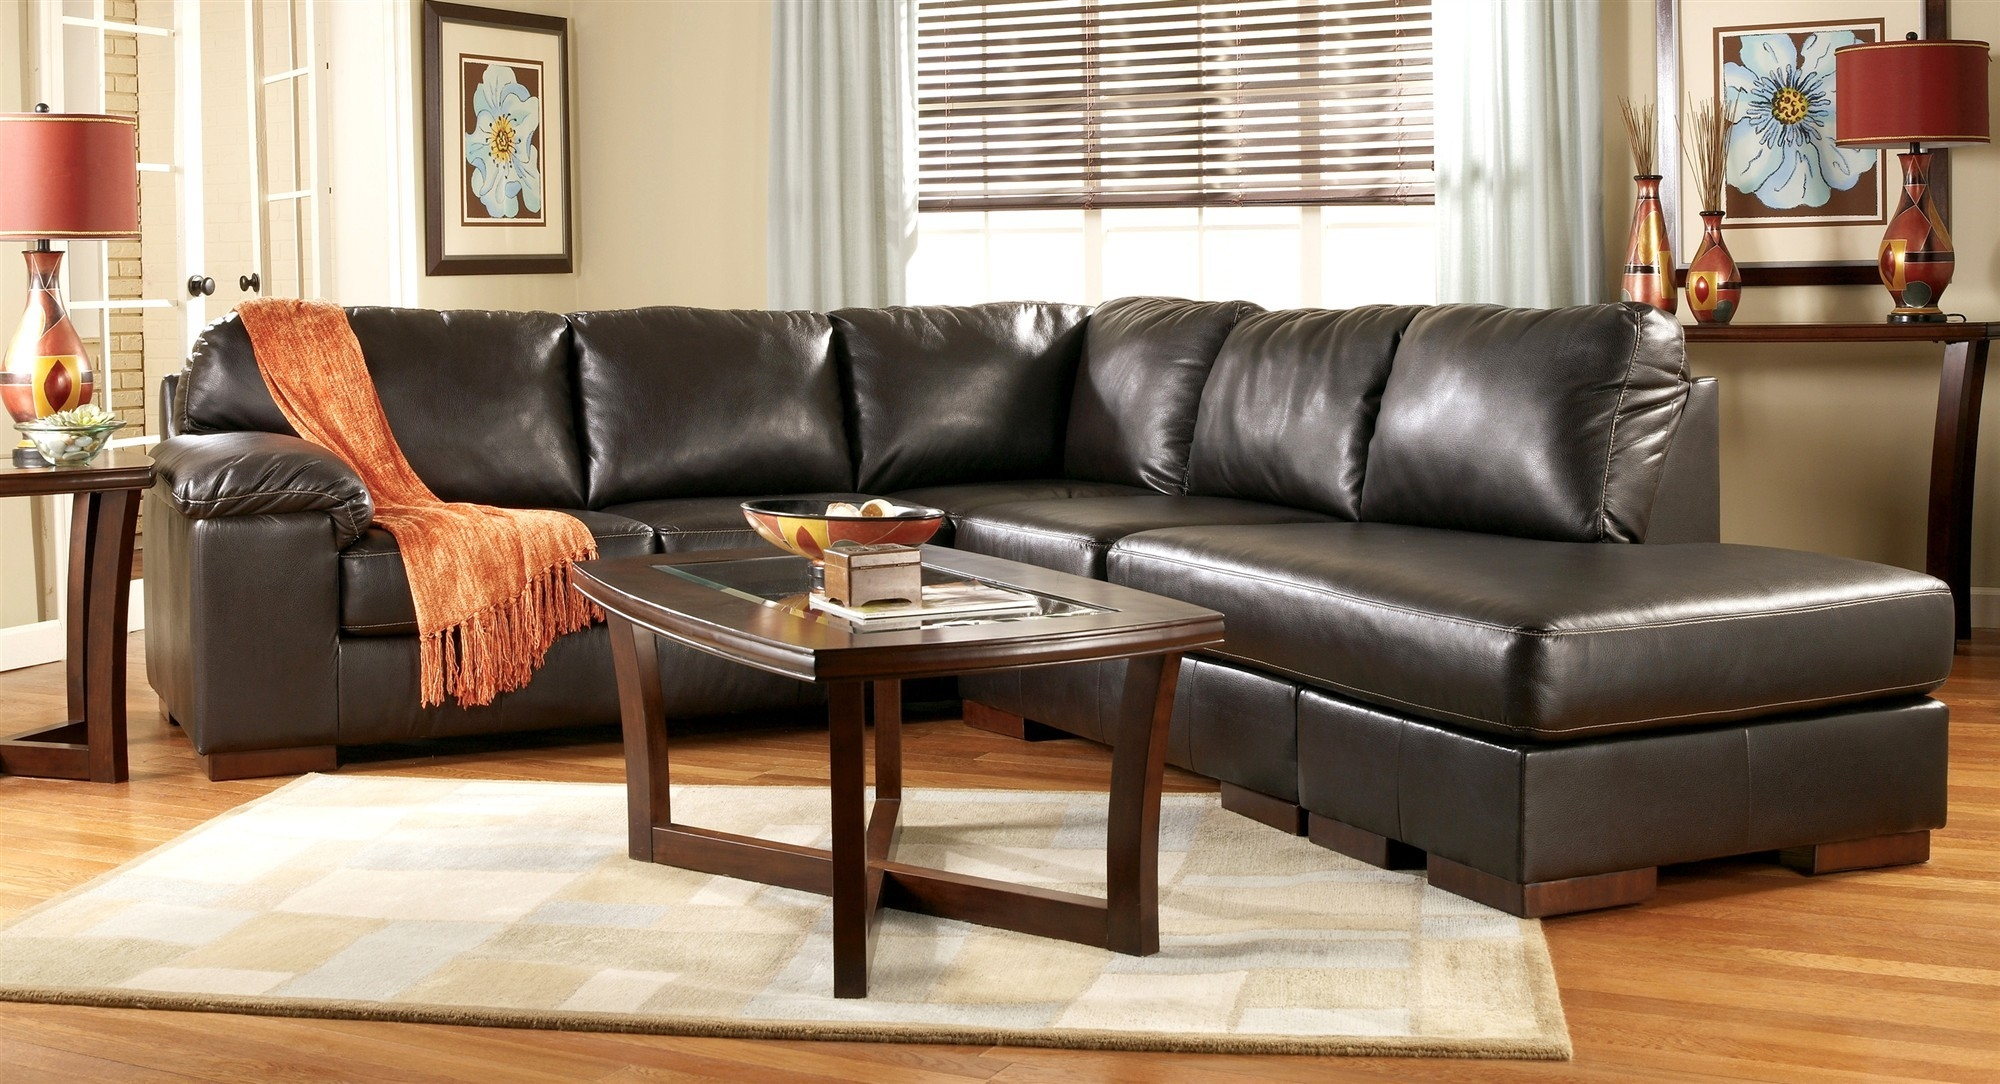 Simple 3 Piece Leather Sectional Sofa With Chaise 79 For Your Pertaining To European Style Sectional Sofas (#11 of 12)